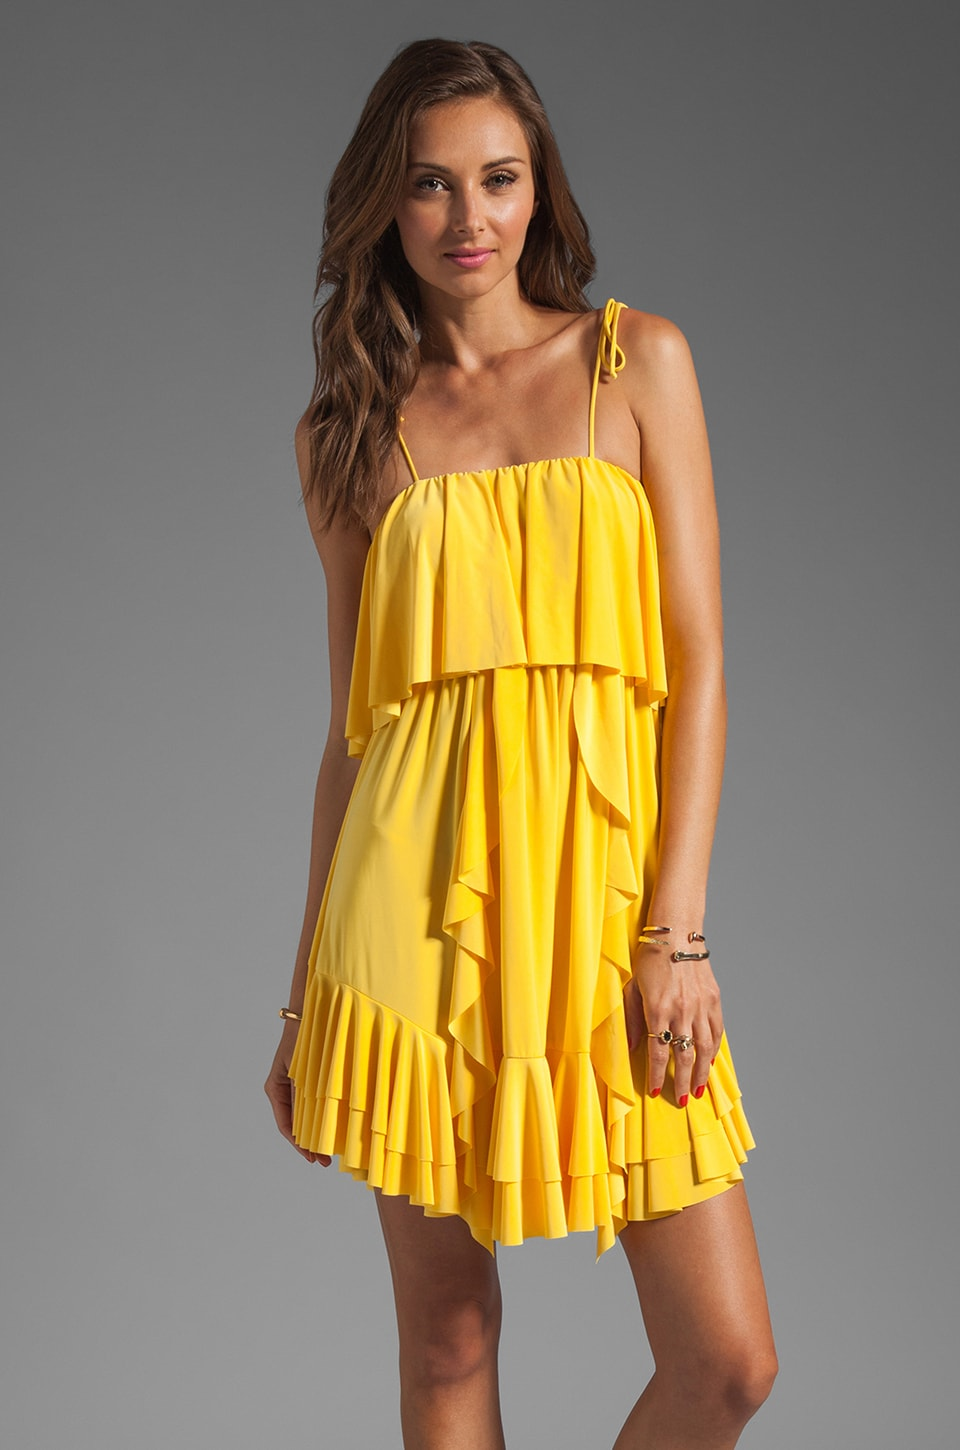 T-Bags LosAngeles Ruffle Front Mini in Yellow